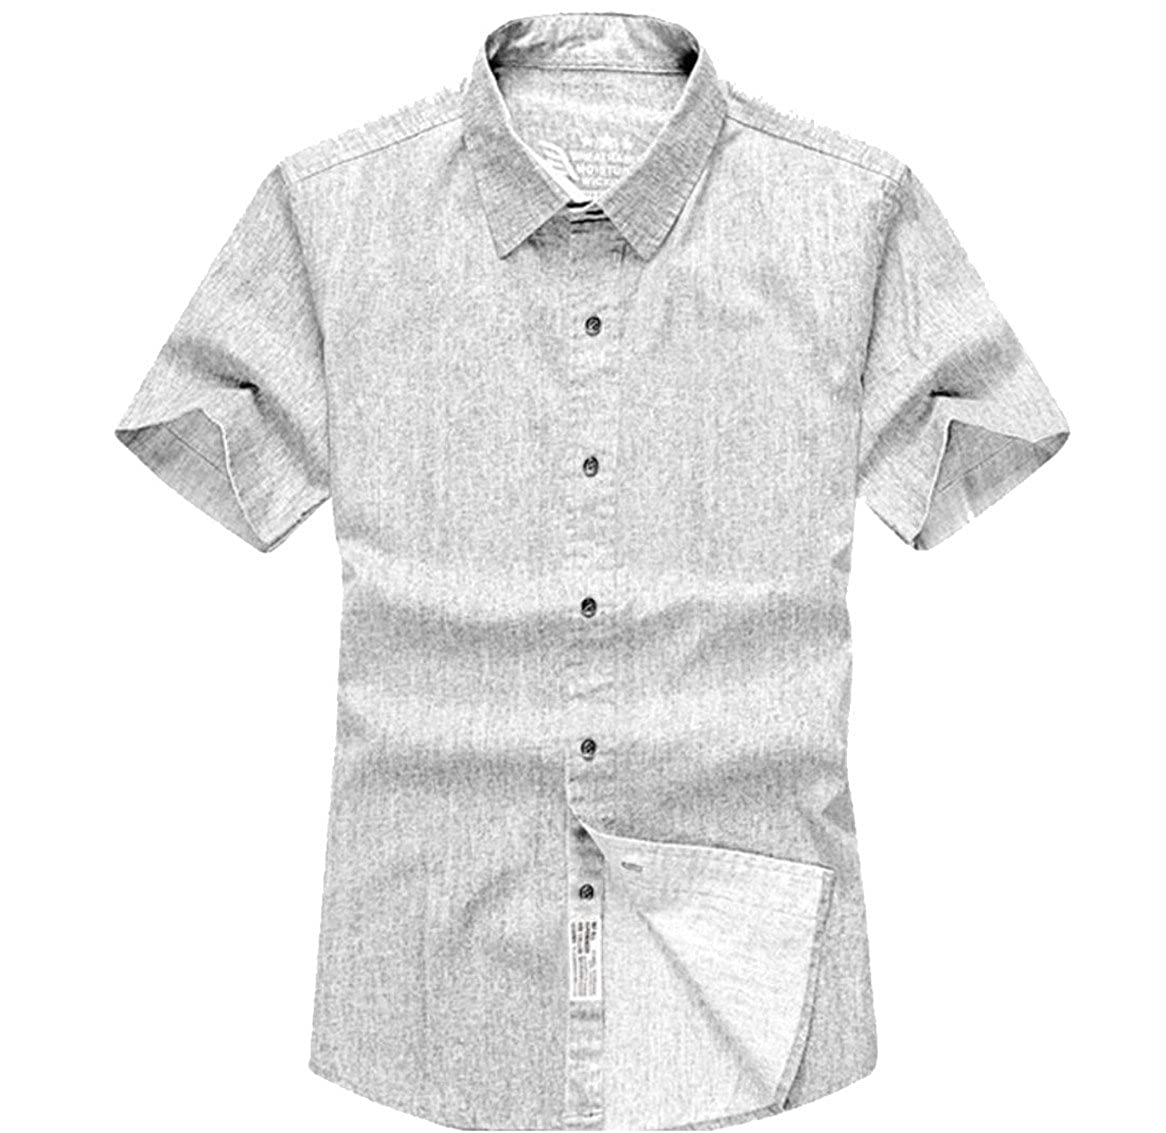 Qiangjinjiu Mens Lapel Short Sleeve Button Down Cotton Solid Color Plus-Size Dress Shirt